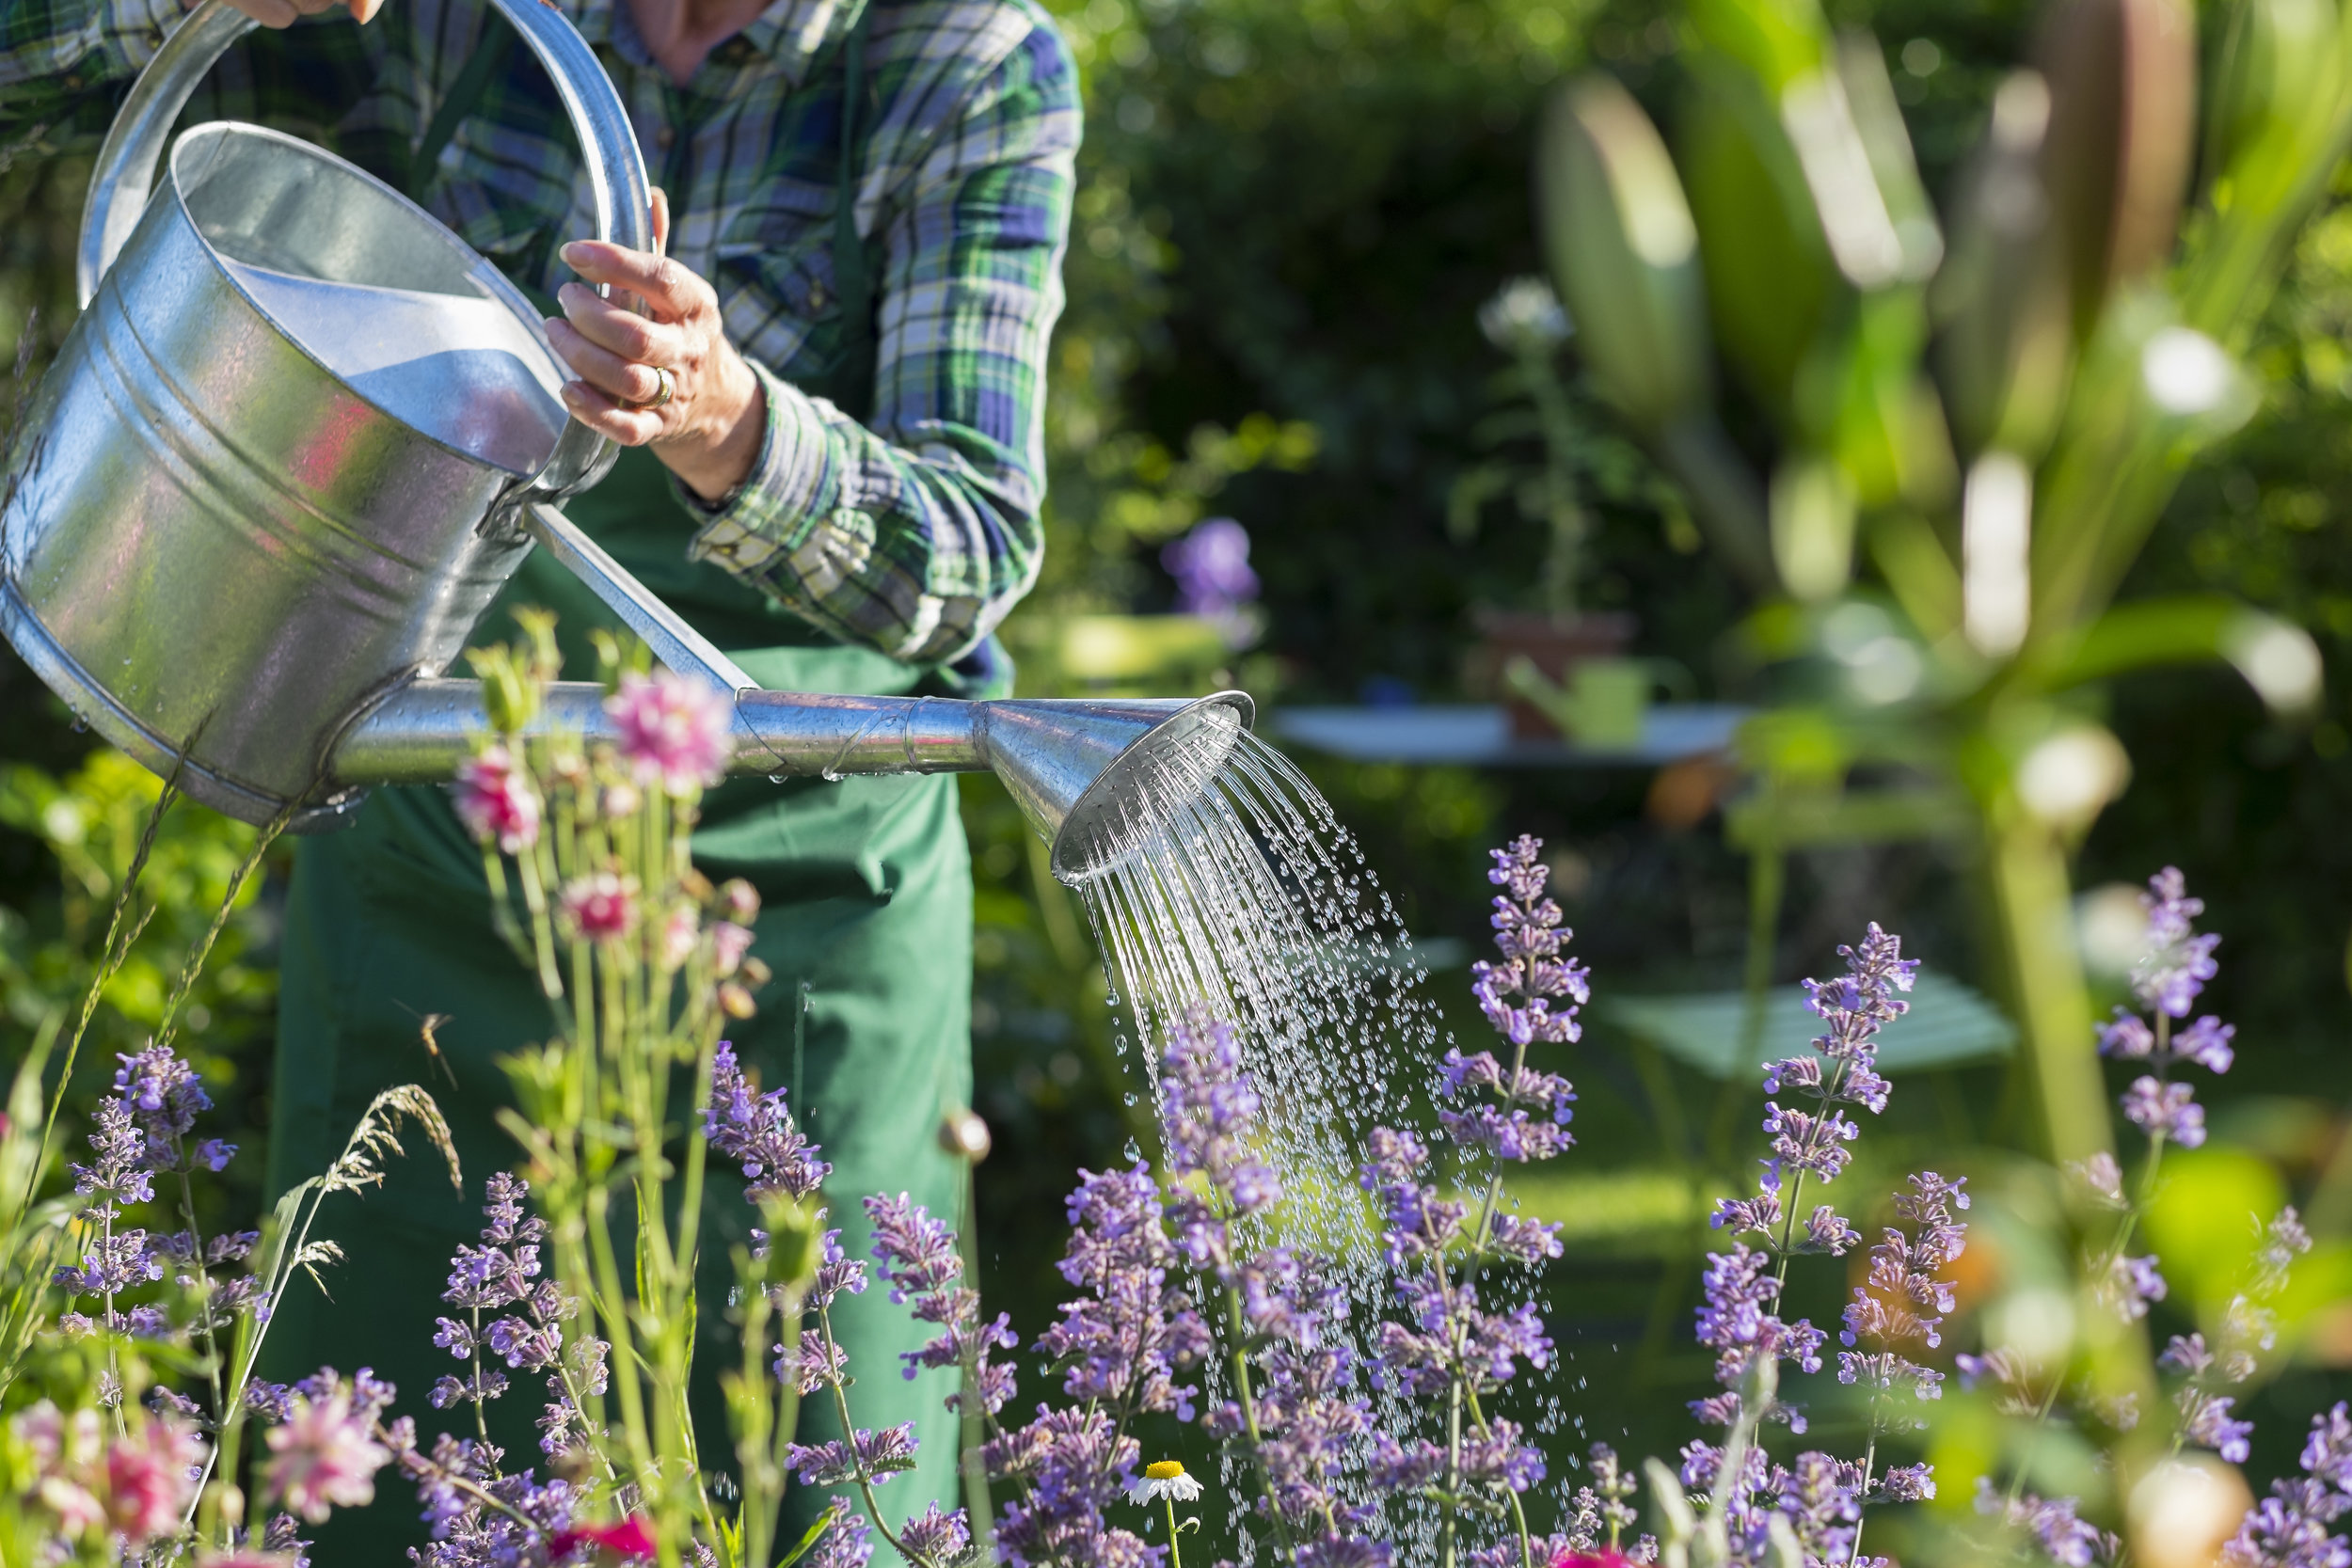 watering season has arrived -